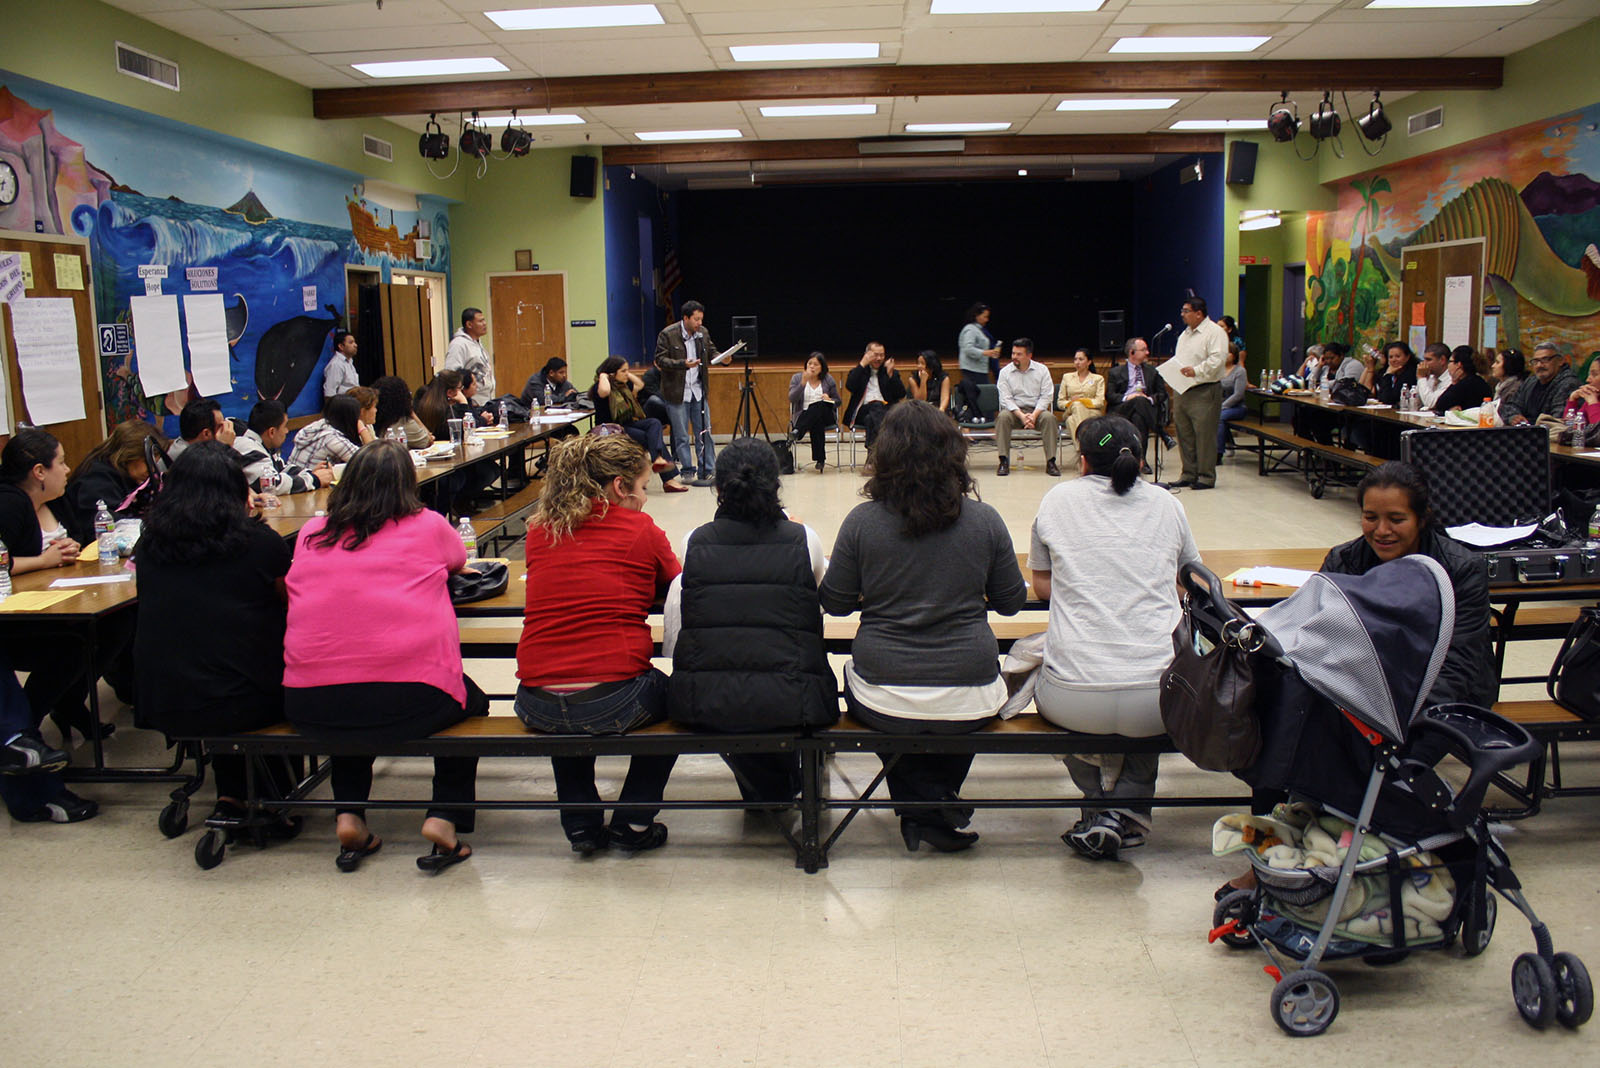 At the meeting, the SFUSD board was surrounded by anxious parents at cafeteria tables.